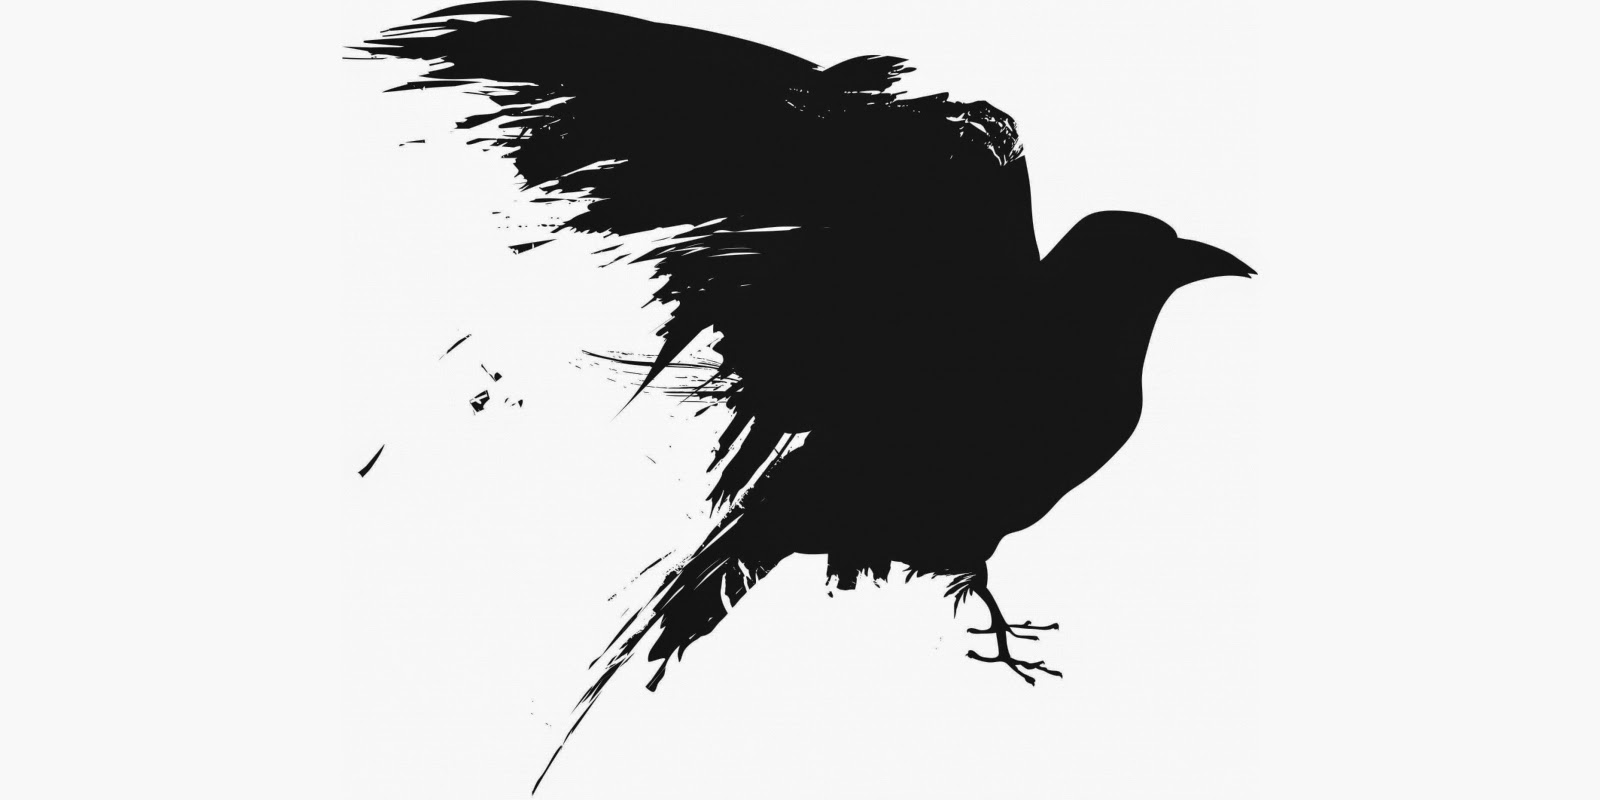 Symbolism Of Three Black Crows ― Have You Been Seeing Crows